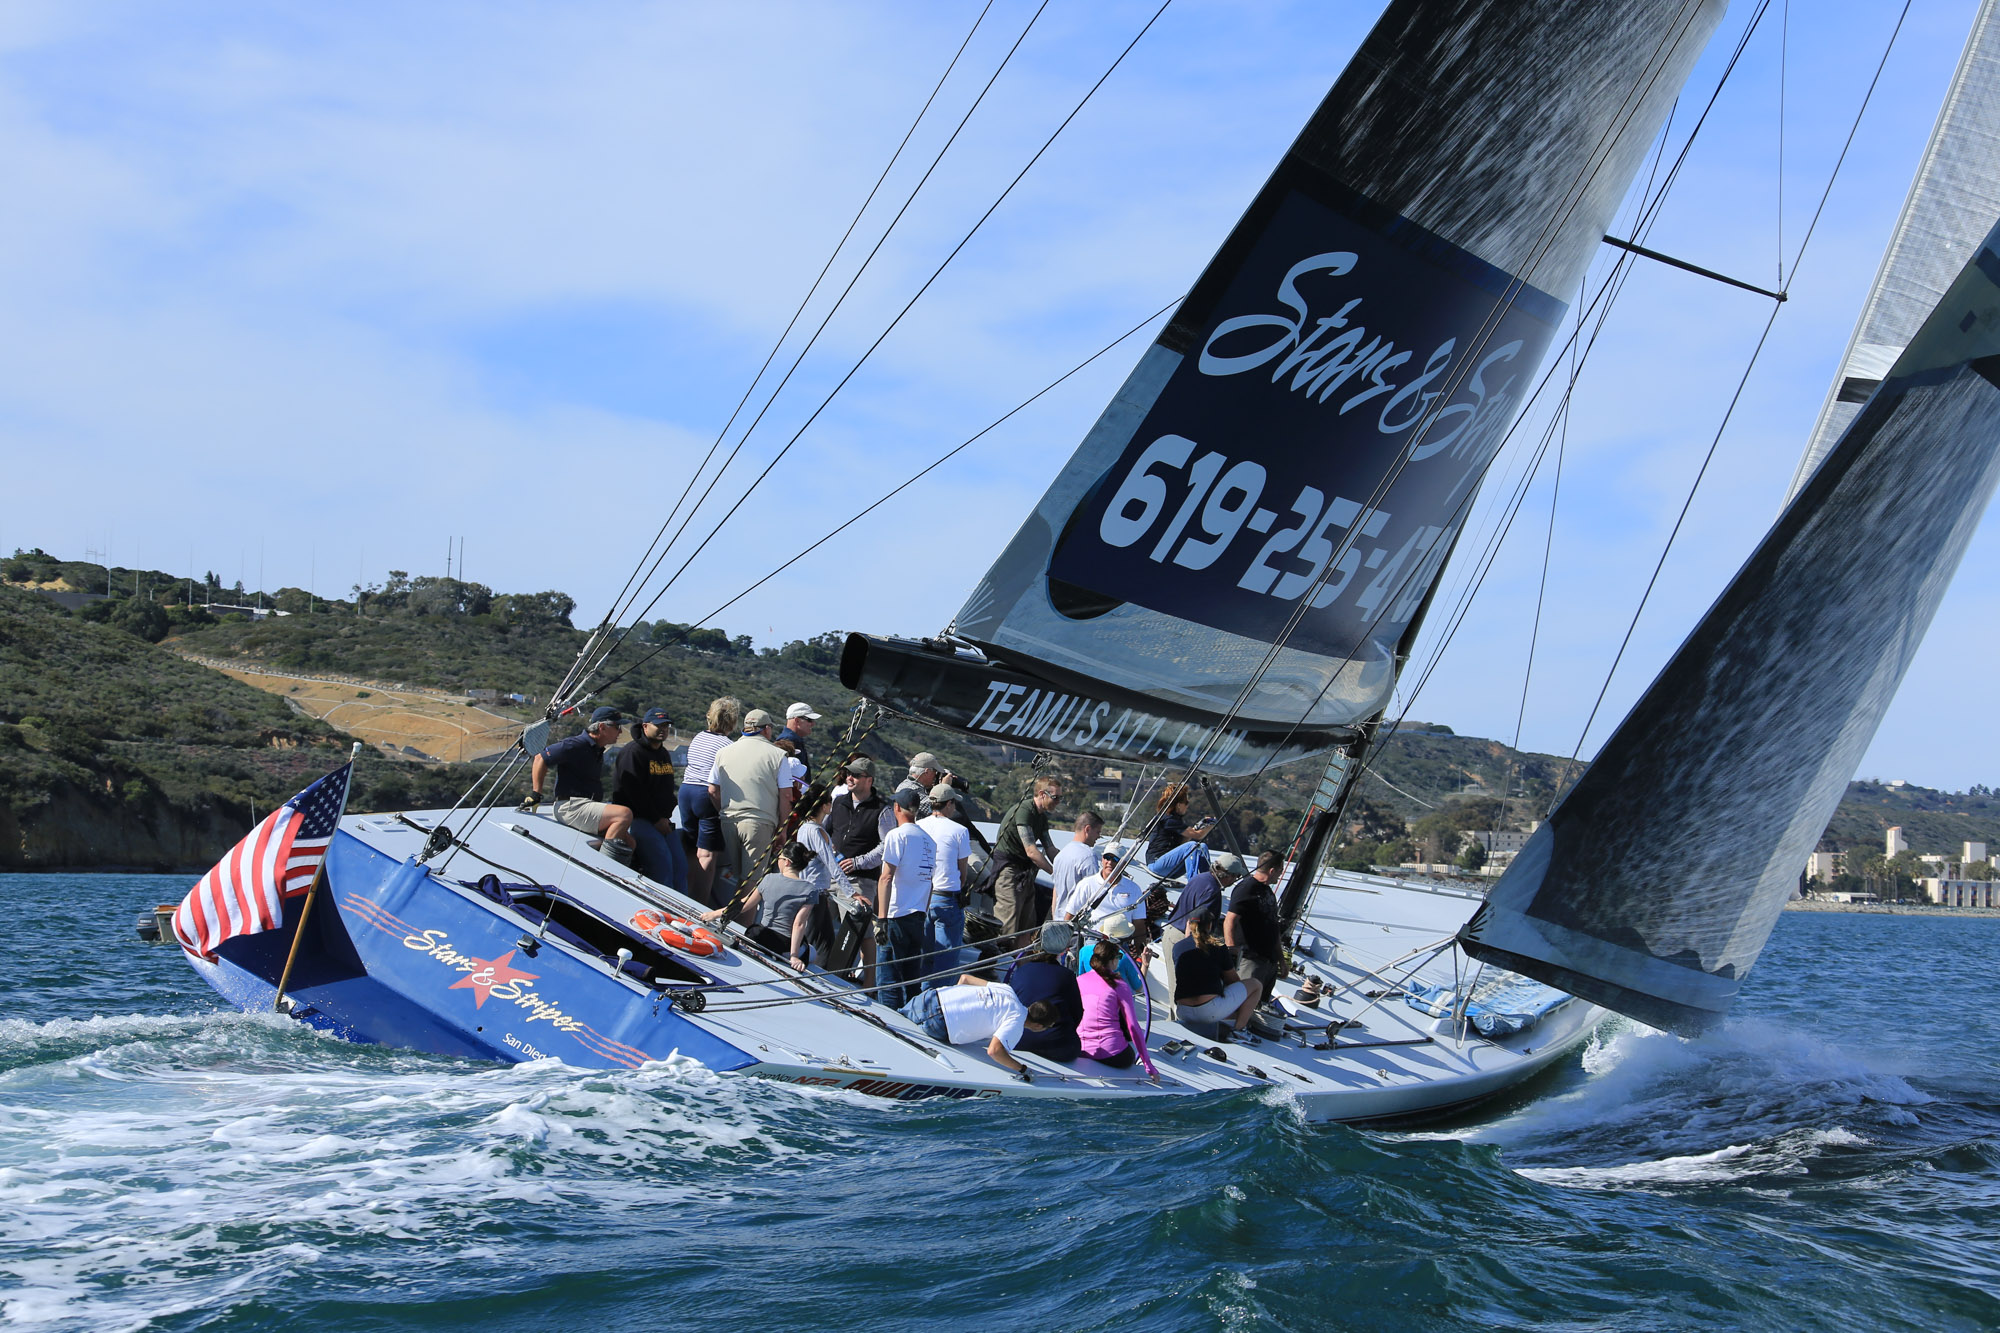 America's Cup sailing aboard Stars & Stripes in San Diego